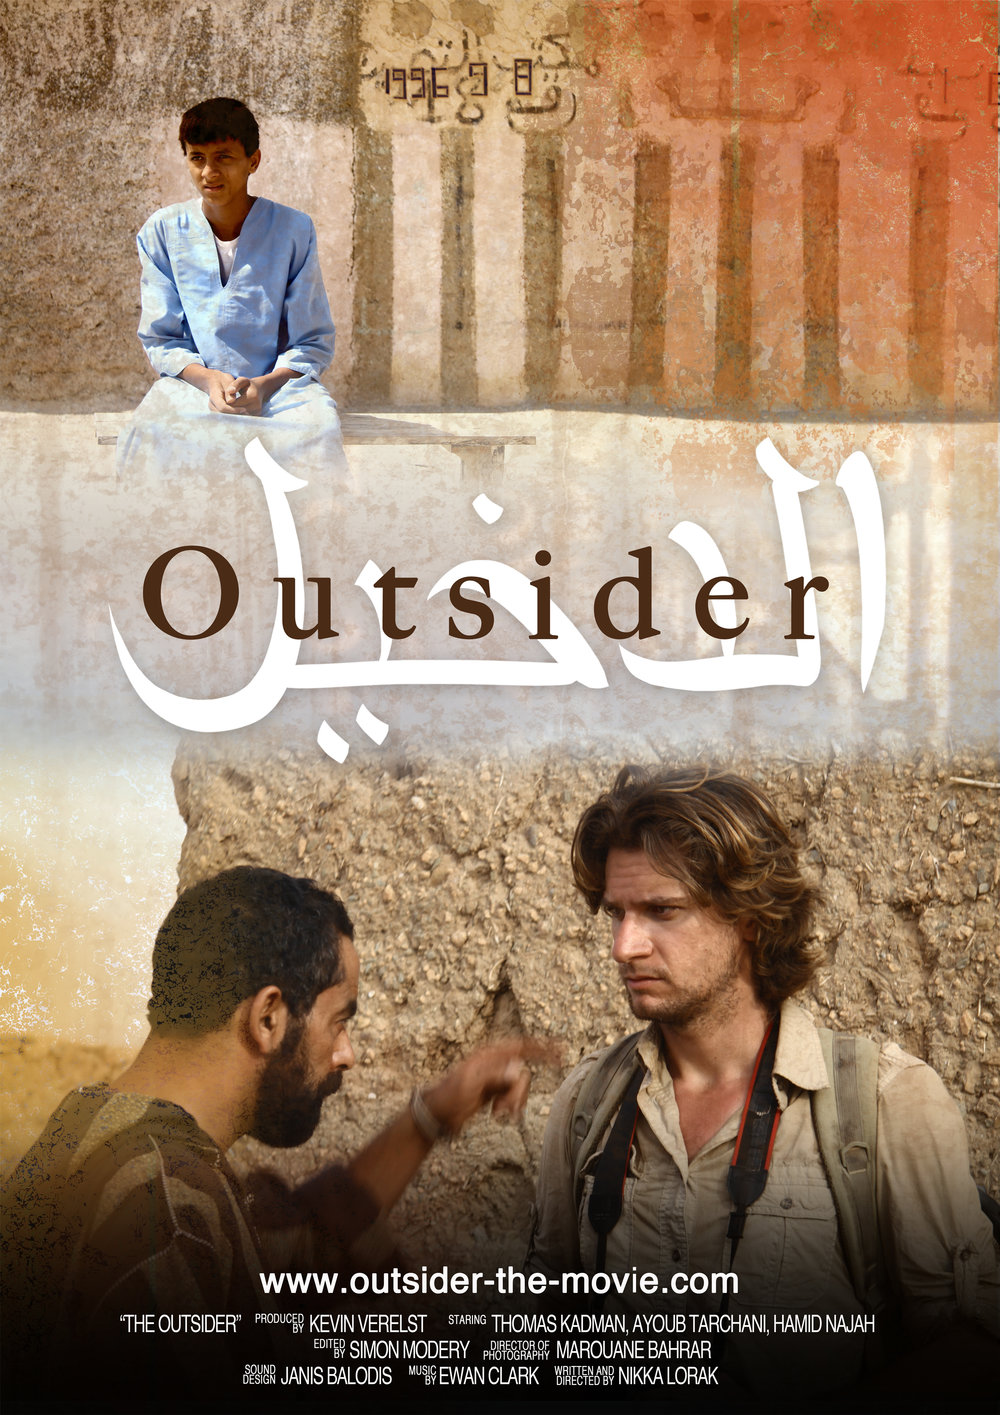 the outsider poster.jpg